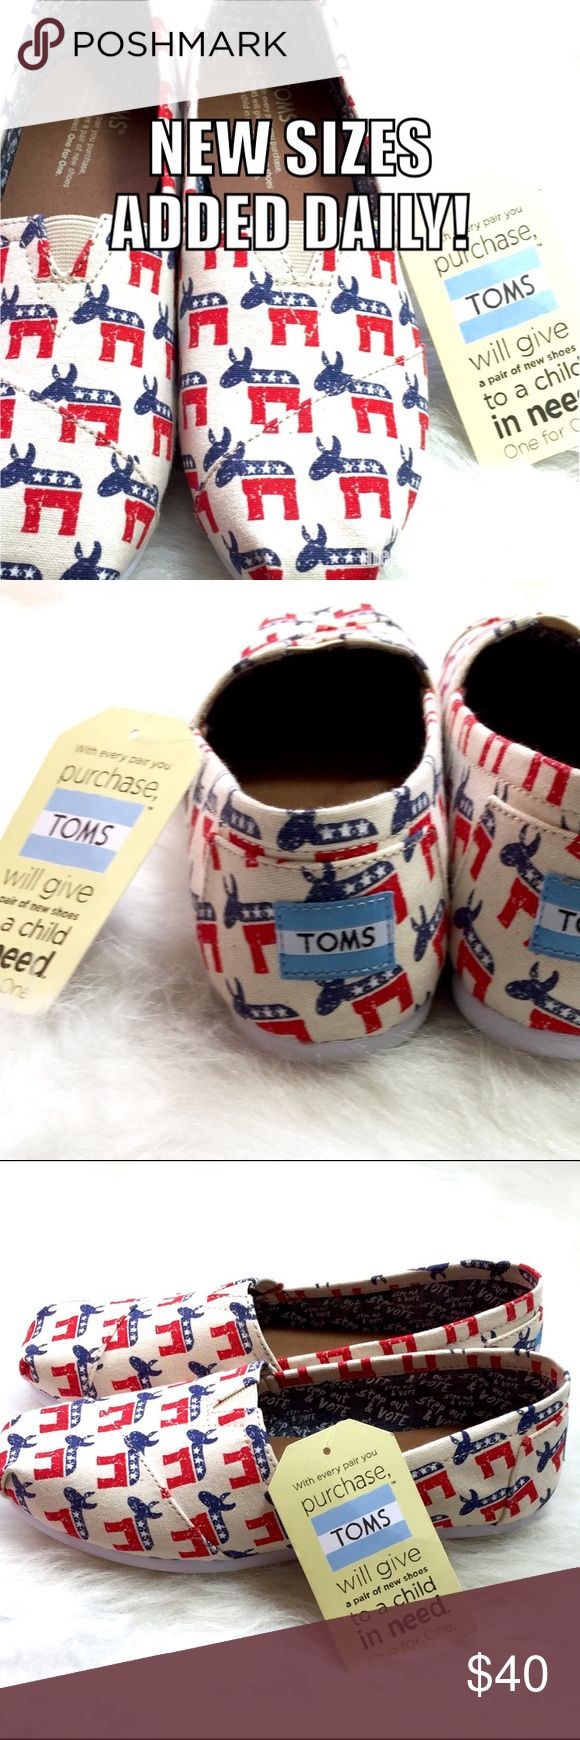 "🇺🇸 TOMS DEMOCRATIC DONKEY slip on loafers! GET 'EM WHILE THEY'RE HOT! Wear your always fashionable registration on your feet with these vegan leather limited edition Election Day TOMS. USA red, white & blue Democratic Donkeys flaunt your political style and will pair perfectly with any pant, top, skirt, jogger or styrofoam voter hat in your closet. Inside chambray lining uplifts our right with ""Step out & Vote."" Encourage others! Get em to the poles! Wear that sticker! Regardless of…"